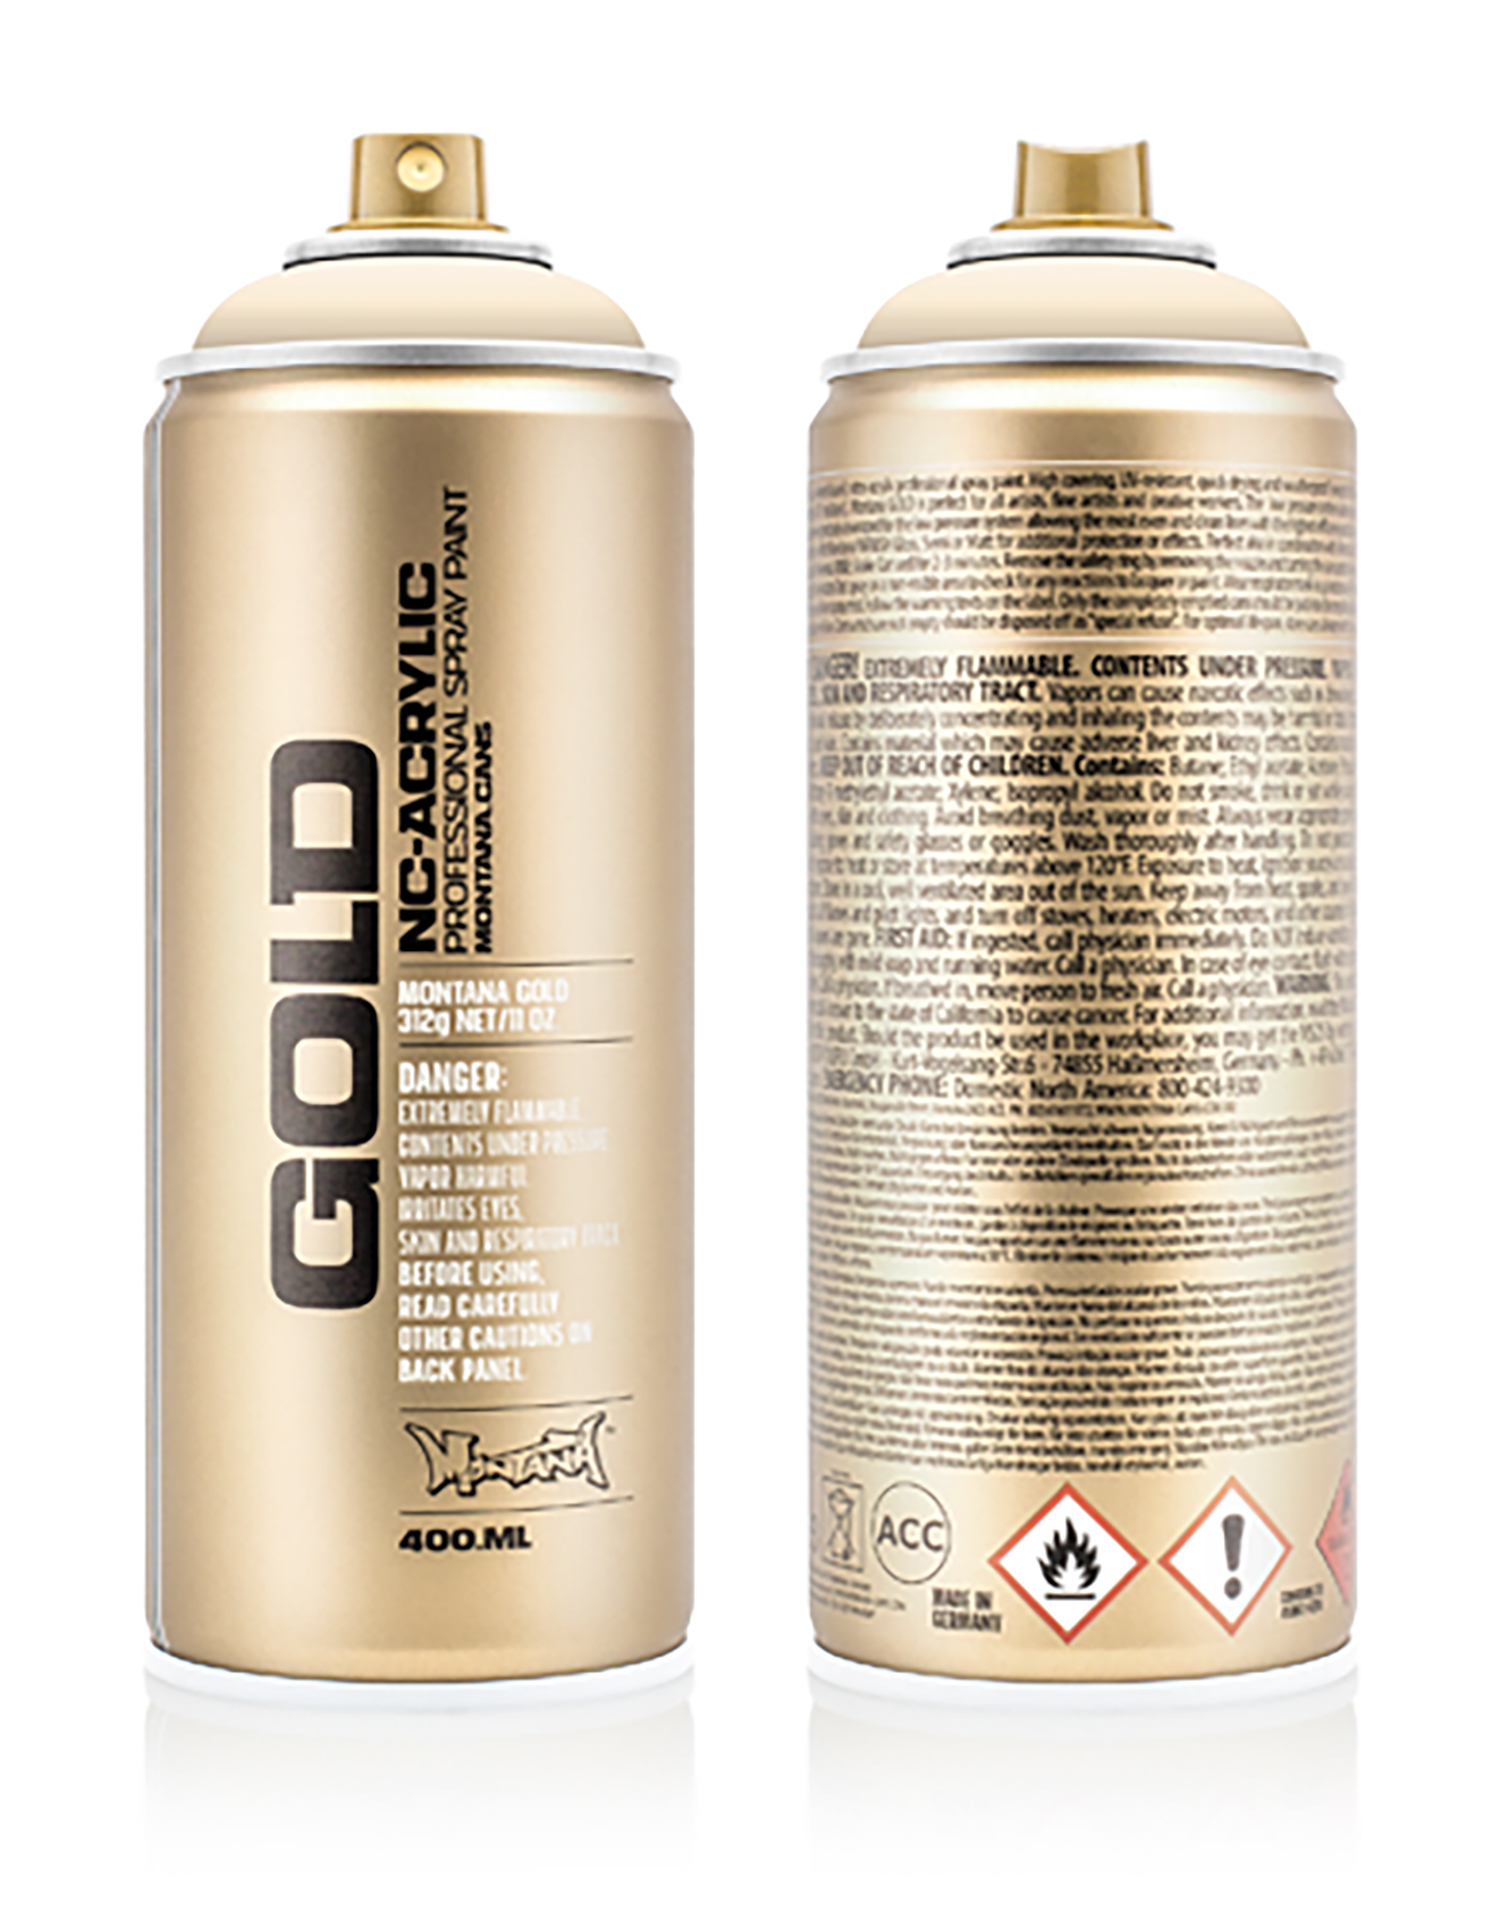 MONTANA-GOLD-SPRAY-400ML-G-2000